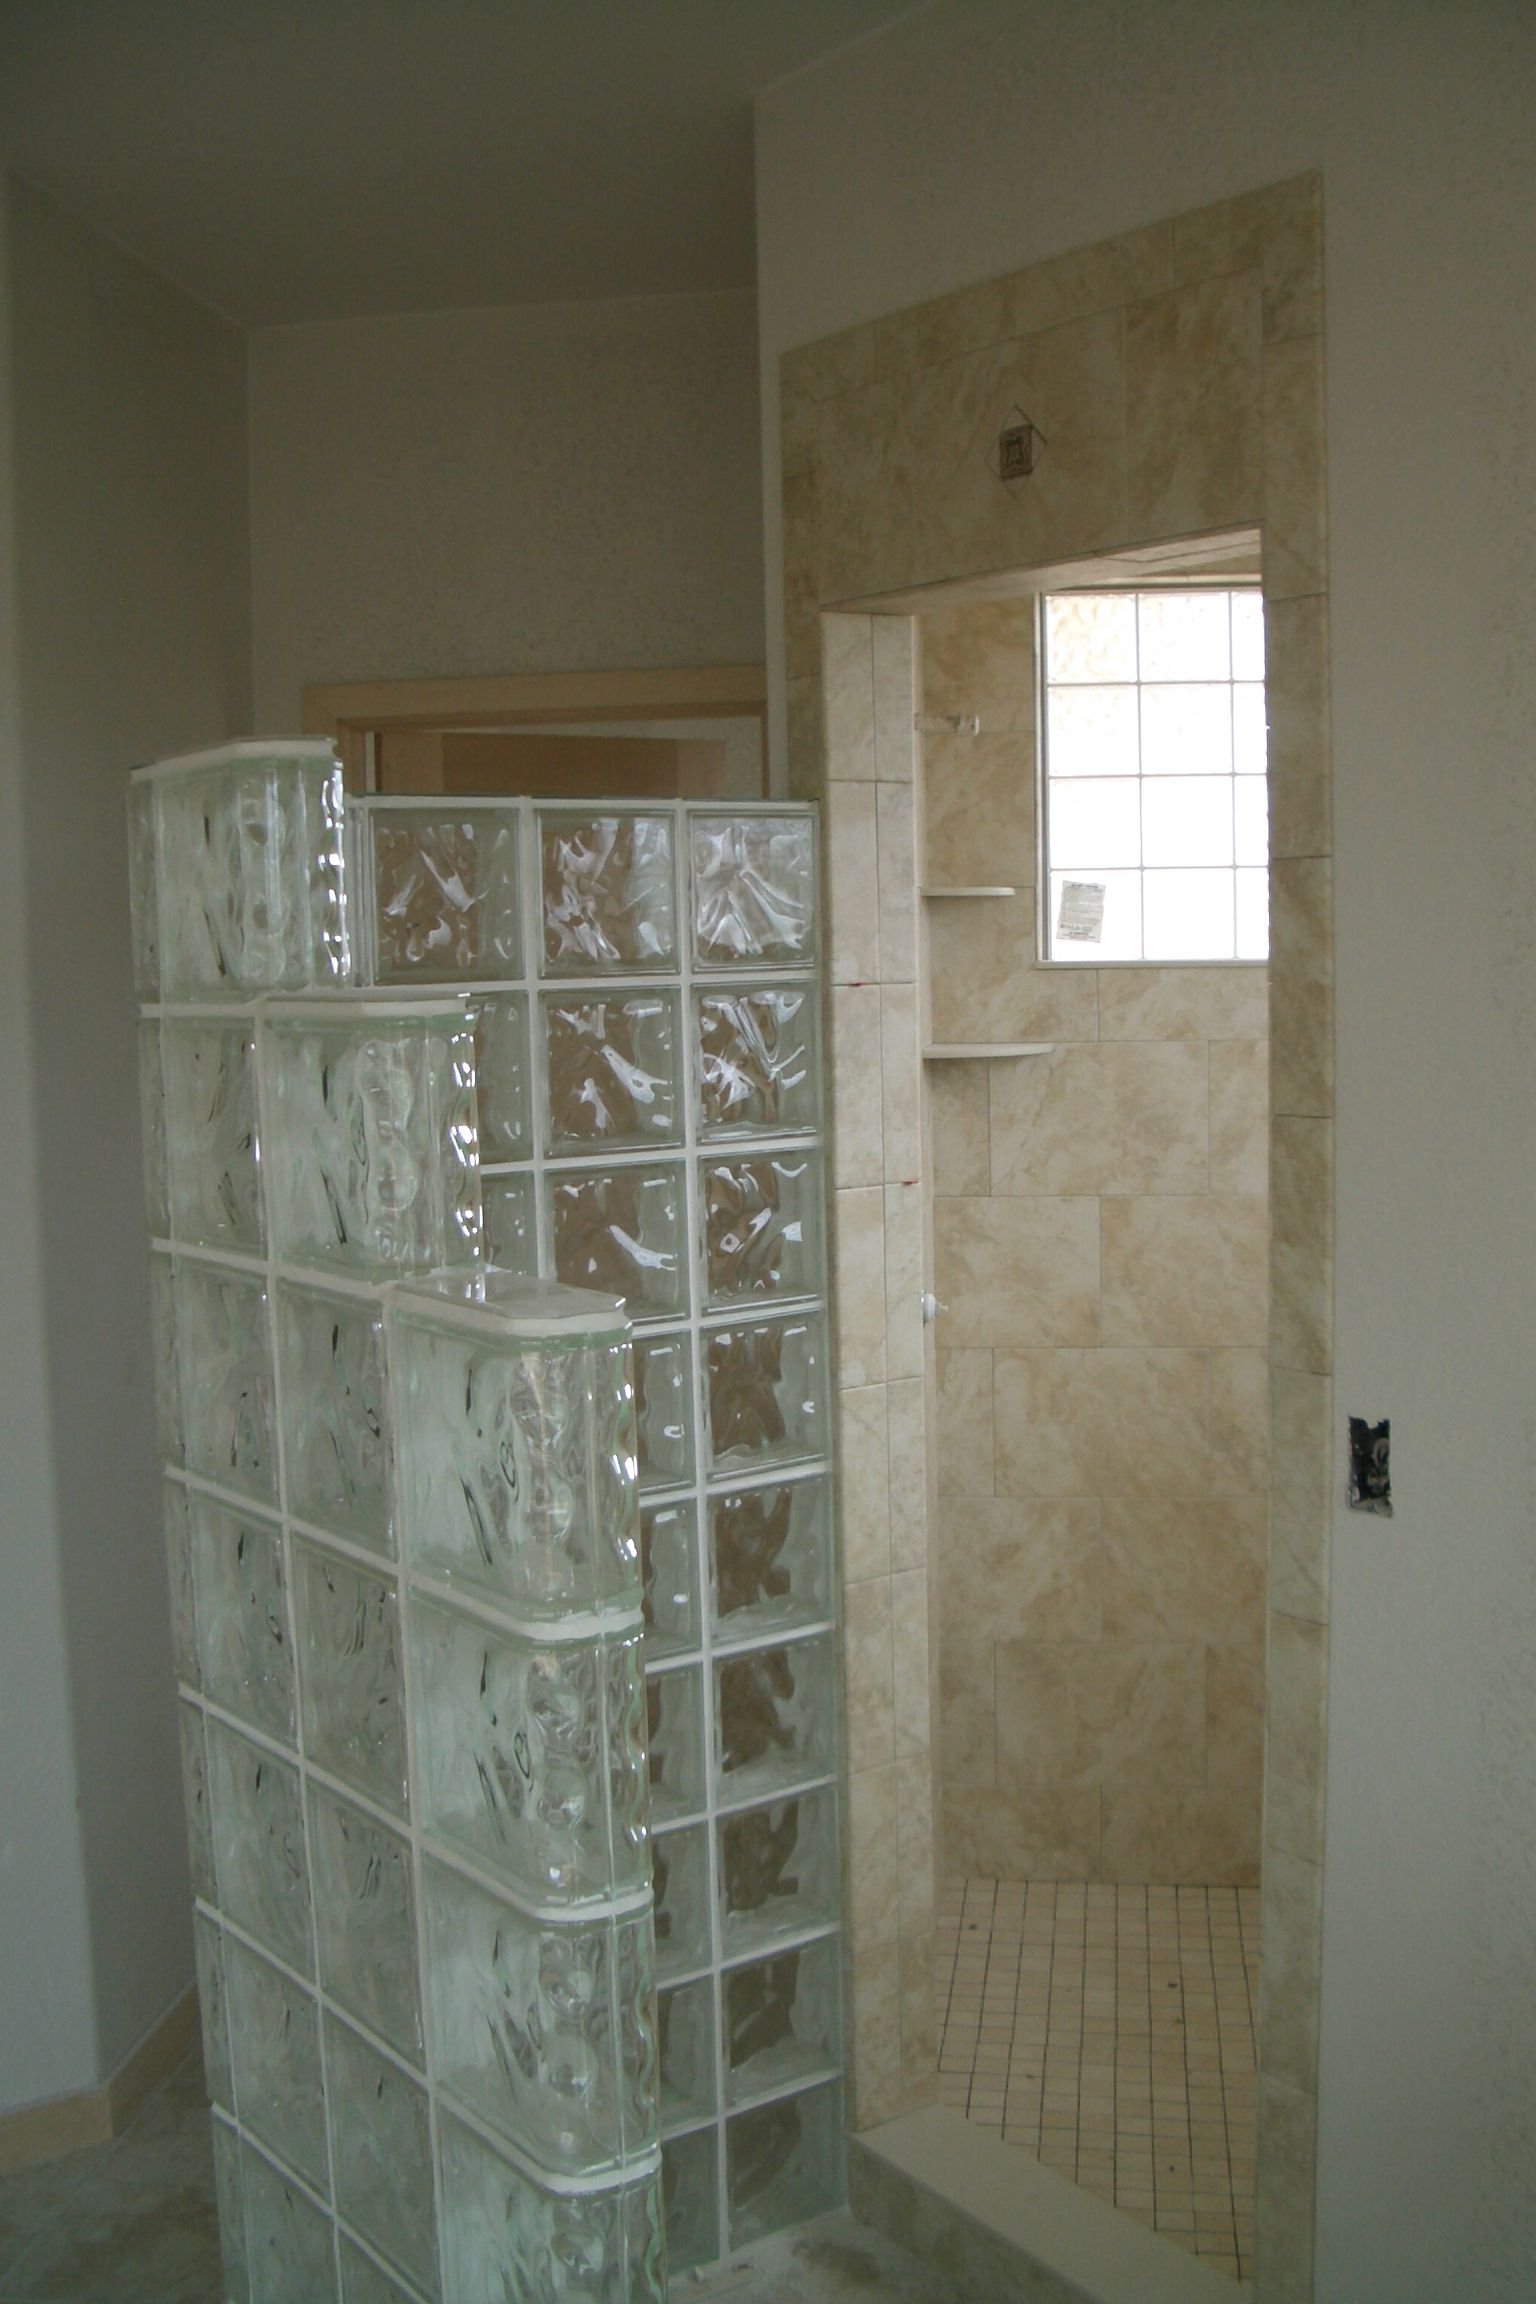 glass block as divider showers room also soft brown granite wall tiles bath as inspiring remodel